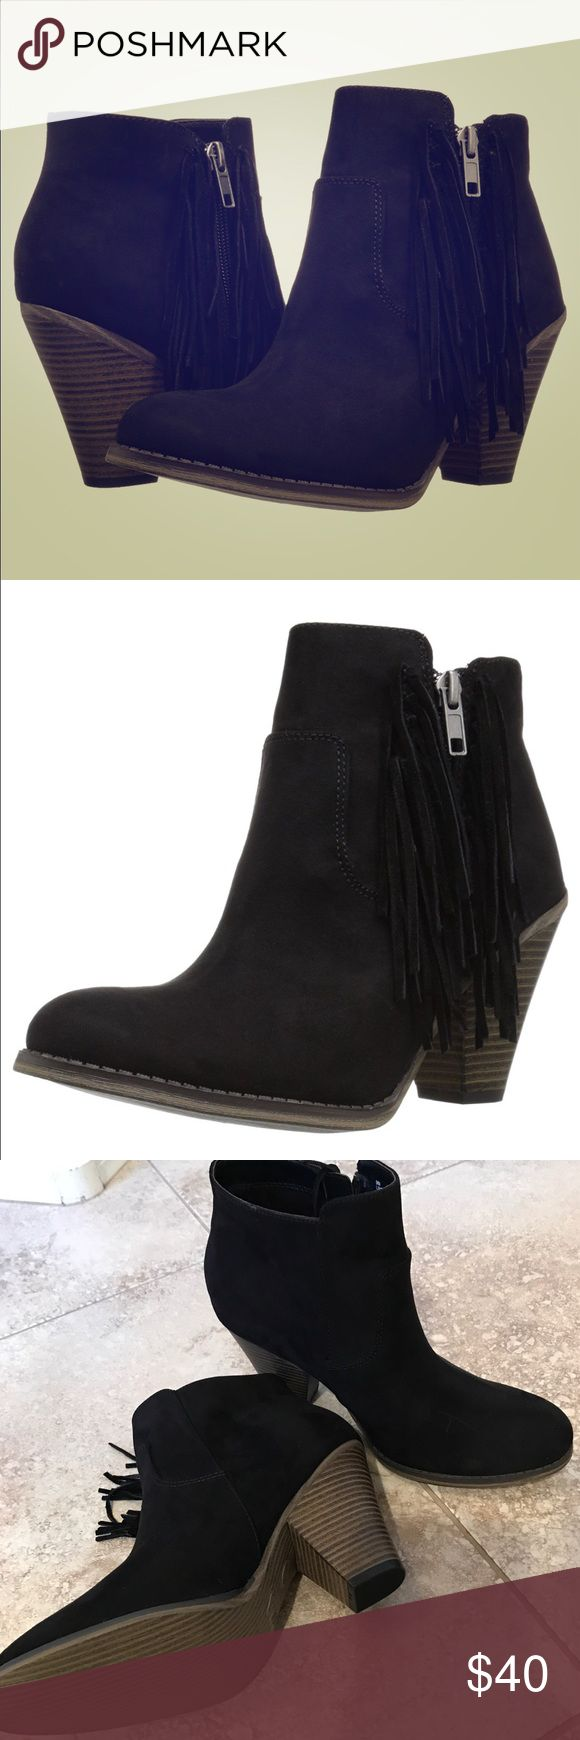 "Mia Black Fringe Lindsie Bootie NWOT - black suede bootie. Western-inspired side fringe detail completes a soft textured bootie lifted on a wooden heel. M=standard width. Round toe. Faux suede with genuine suede fringe detail. Side zip closure. Stacked print chunky heel. Approx. 3.5"" shaft height, 9"" opening circumference. Approx. 3.5"" heel. Textile and suede upper, manmade sole.. Color: black MIA Shoes Ankle Boots & Booties"